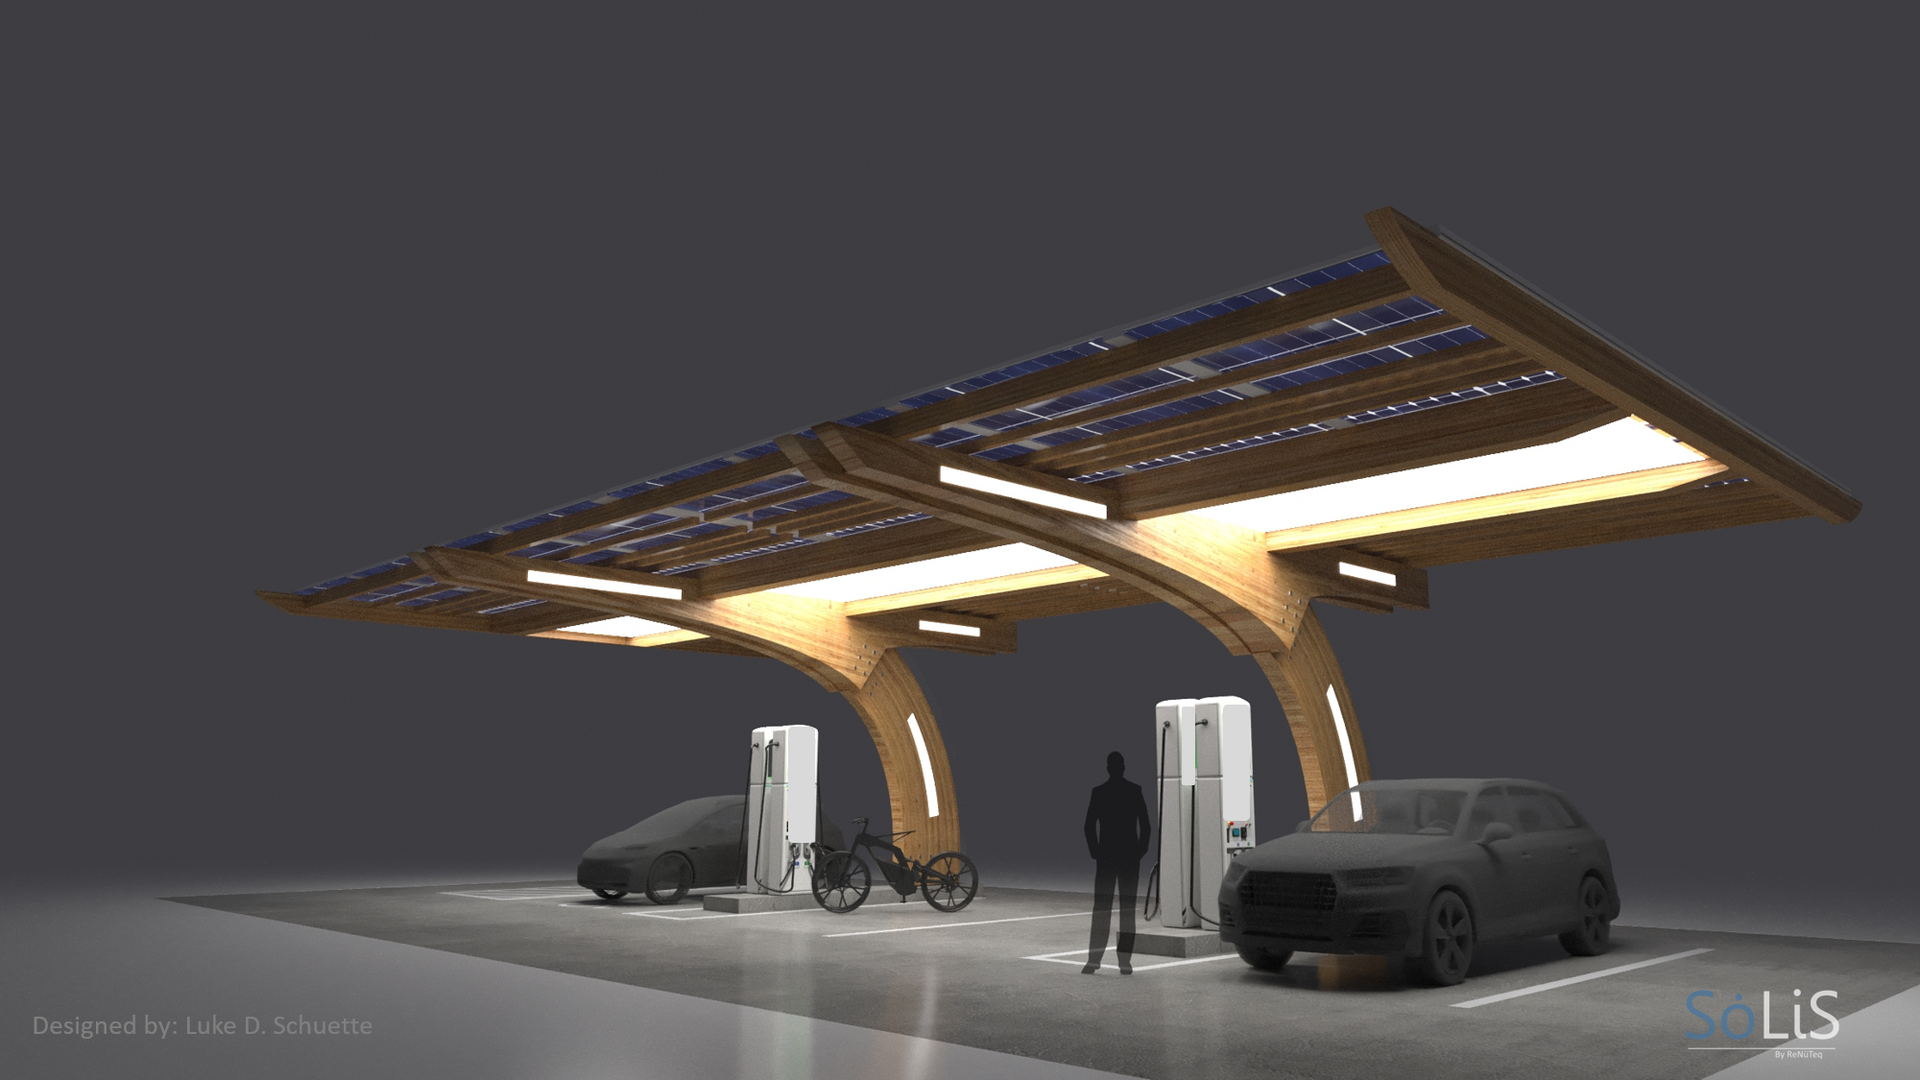 SoLiS - Structures - Designed by Luke Sc